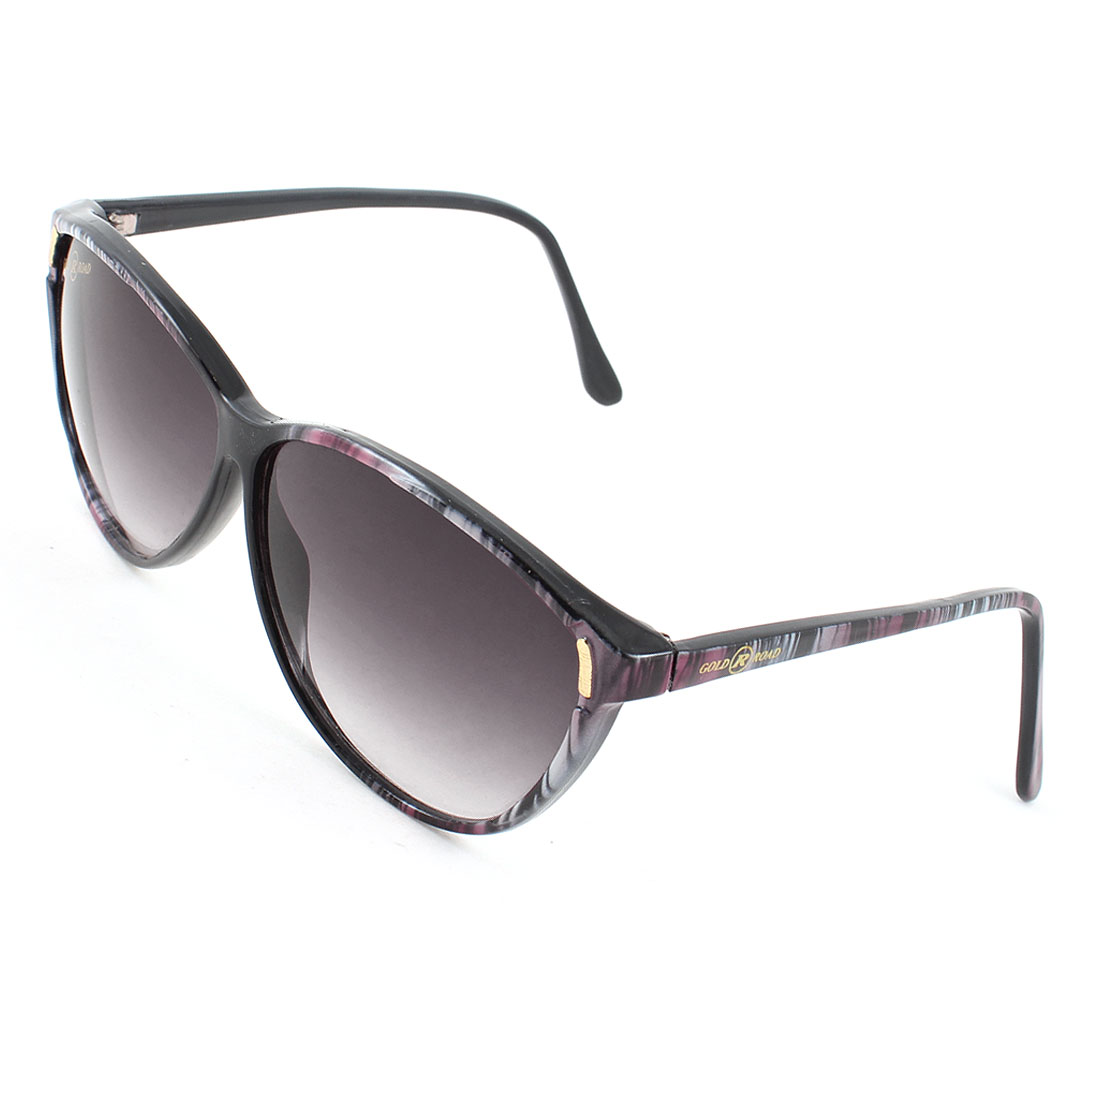 Ladies Women Fuchsia Gray Striped Plastic Full Frame Sunglasses Eyeglasses